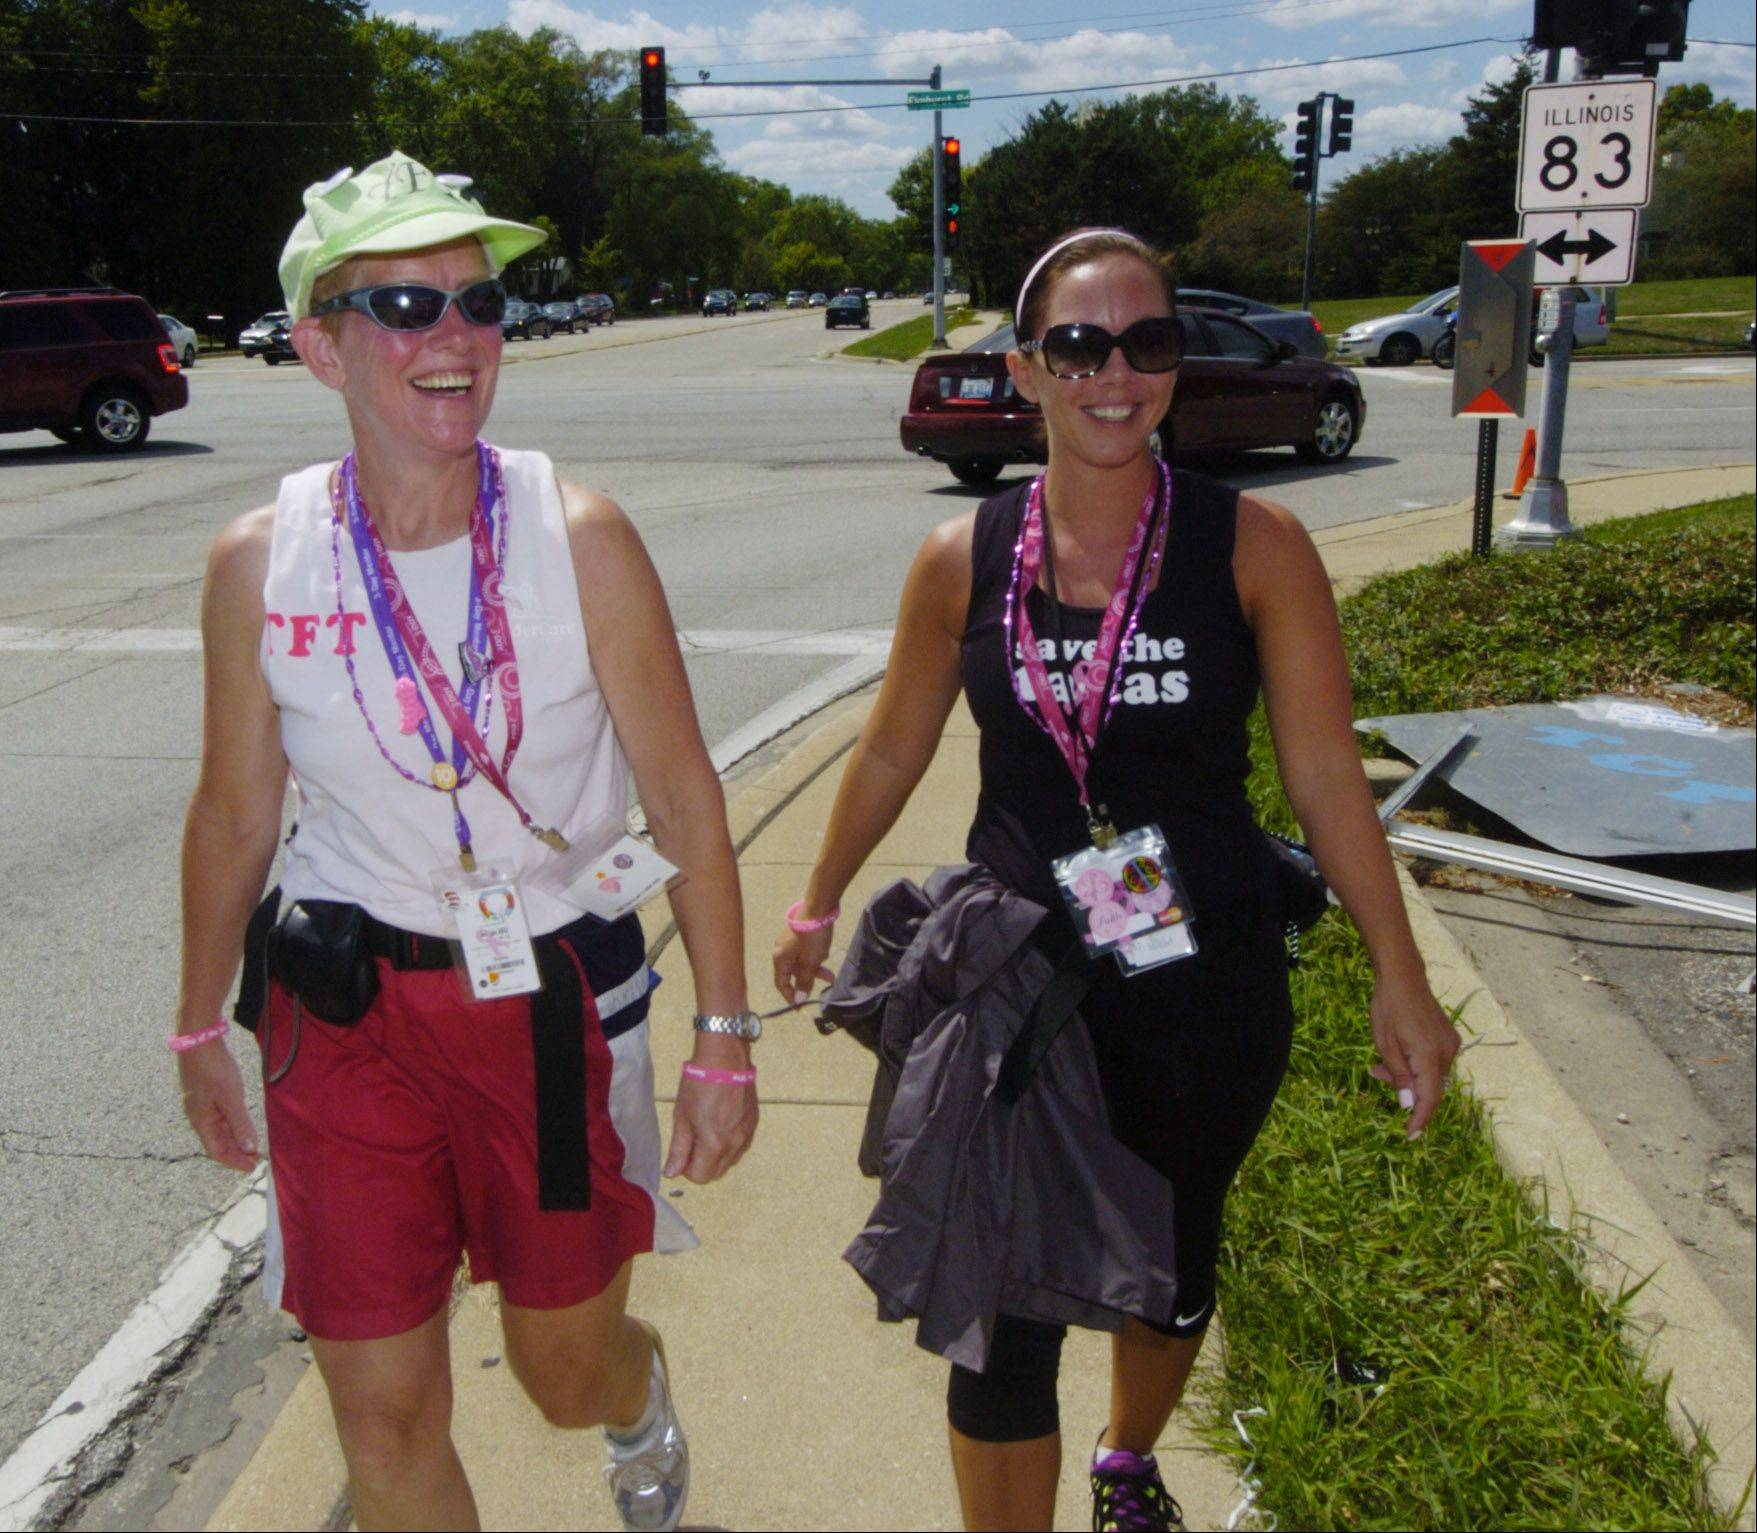 Doris Lovern, left, of Arlington Heights and Lindsay Mochan of Crystal Lake participate in the Susan G. Komen Chicago 3-Day, a 60-mile walk that passed through Mount Prospect on Saturday.